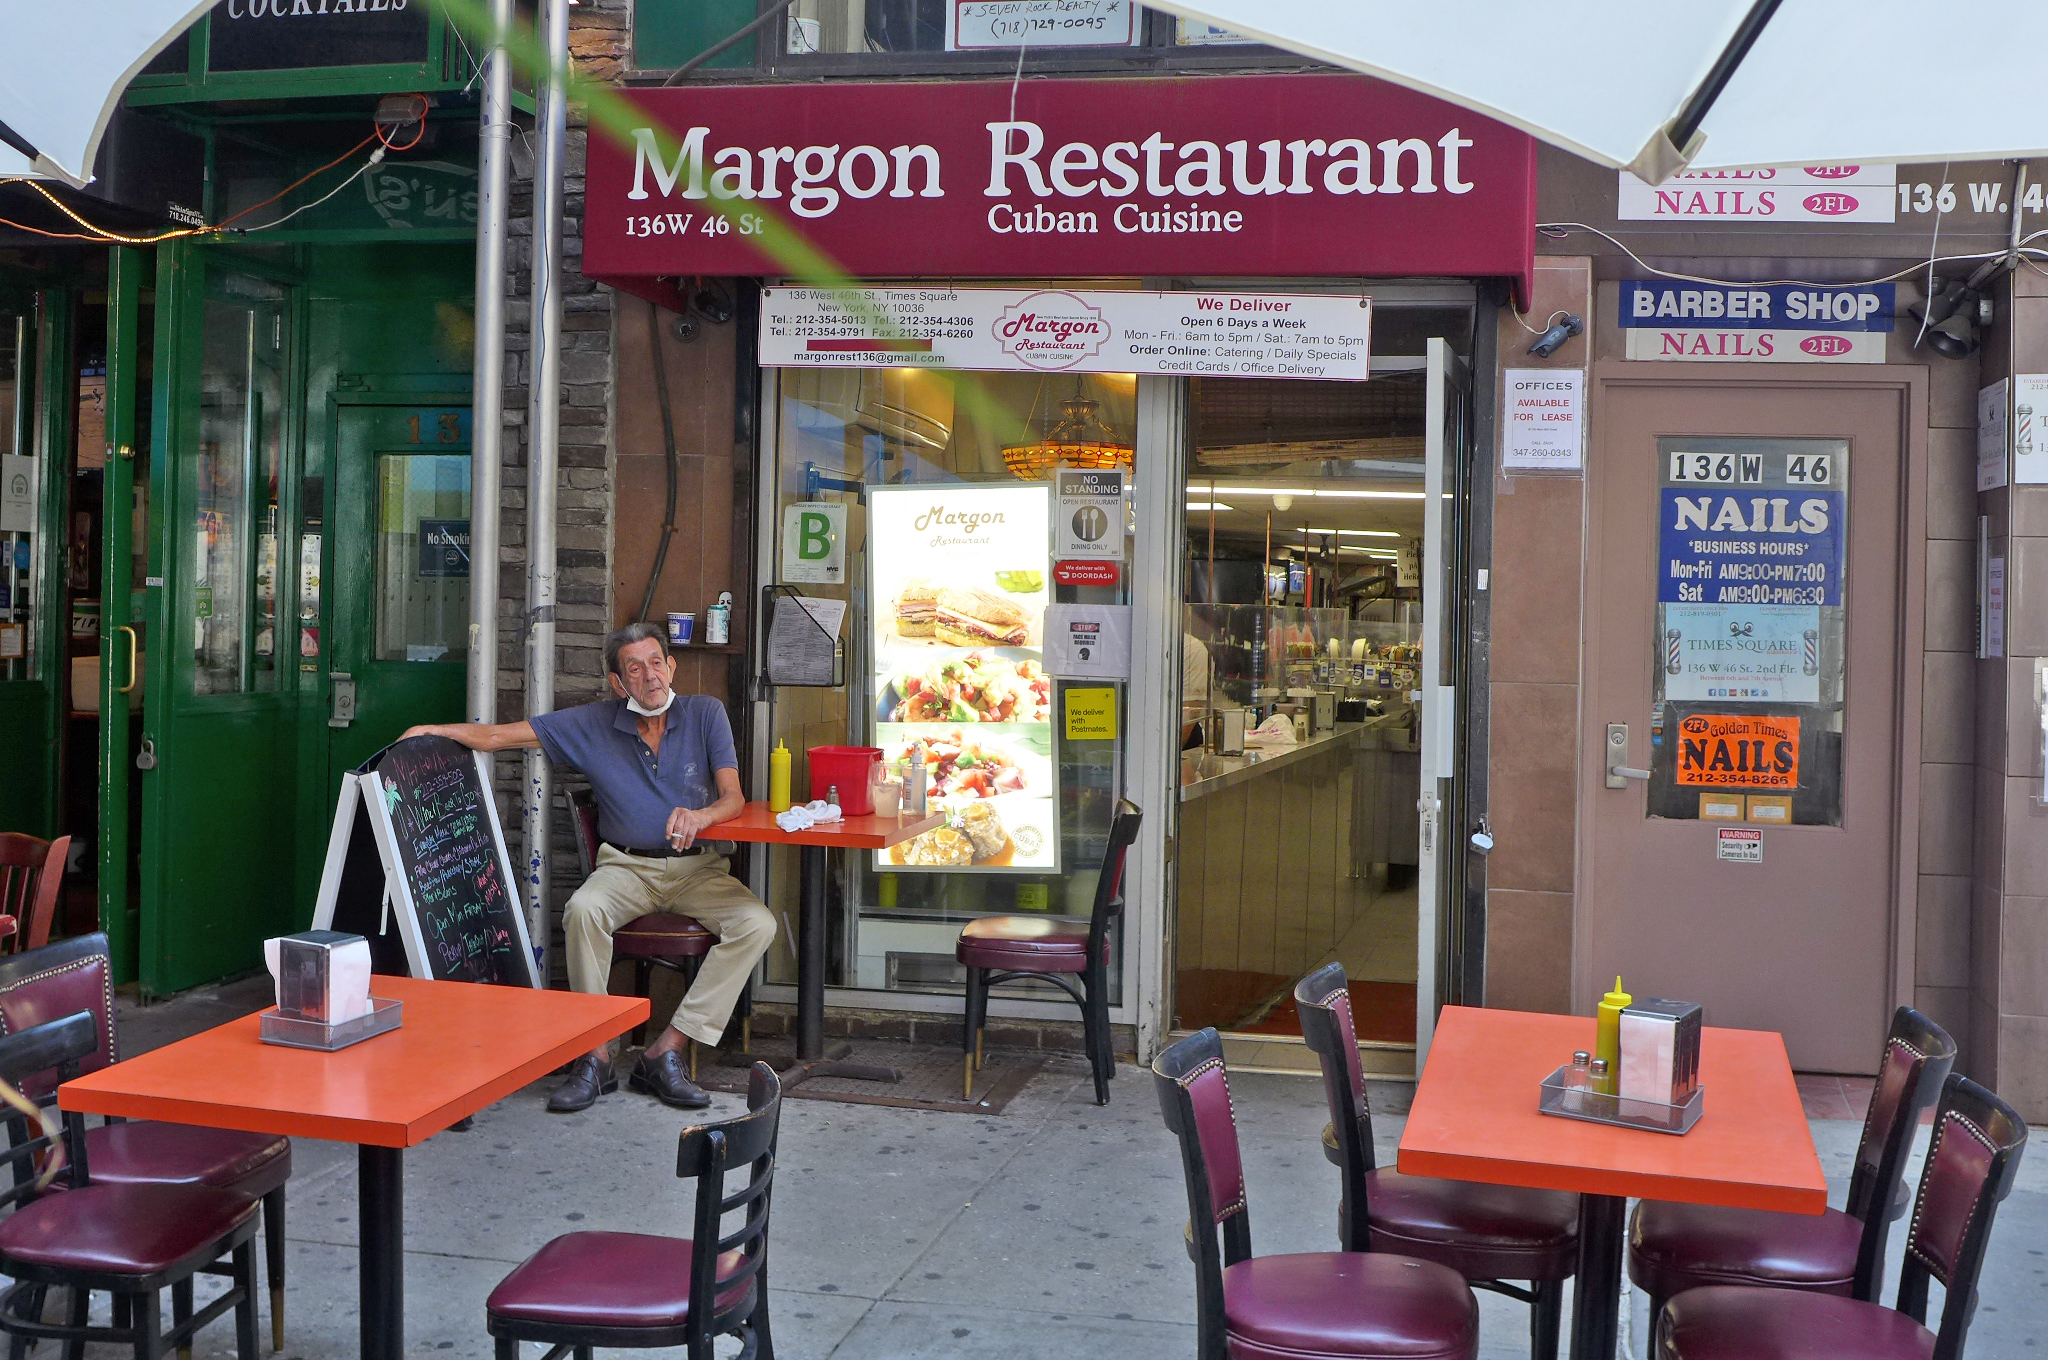 A small restaurant with a red awning and a man sitting out front at an orange table.